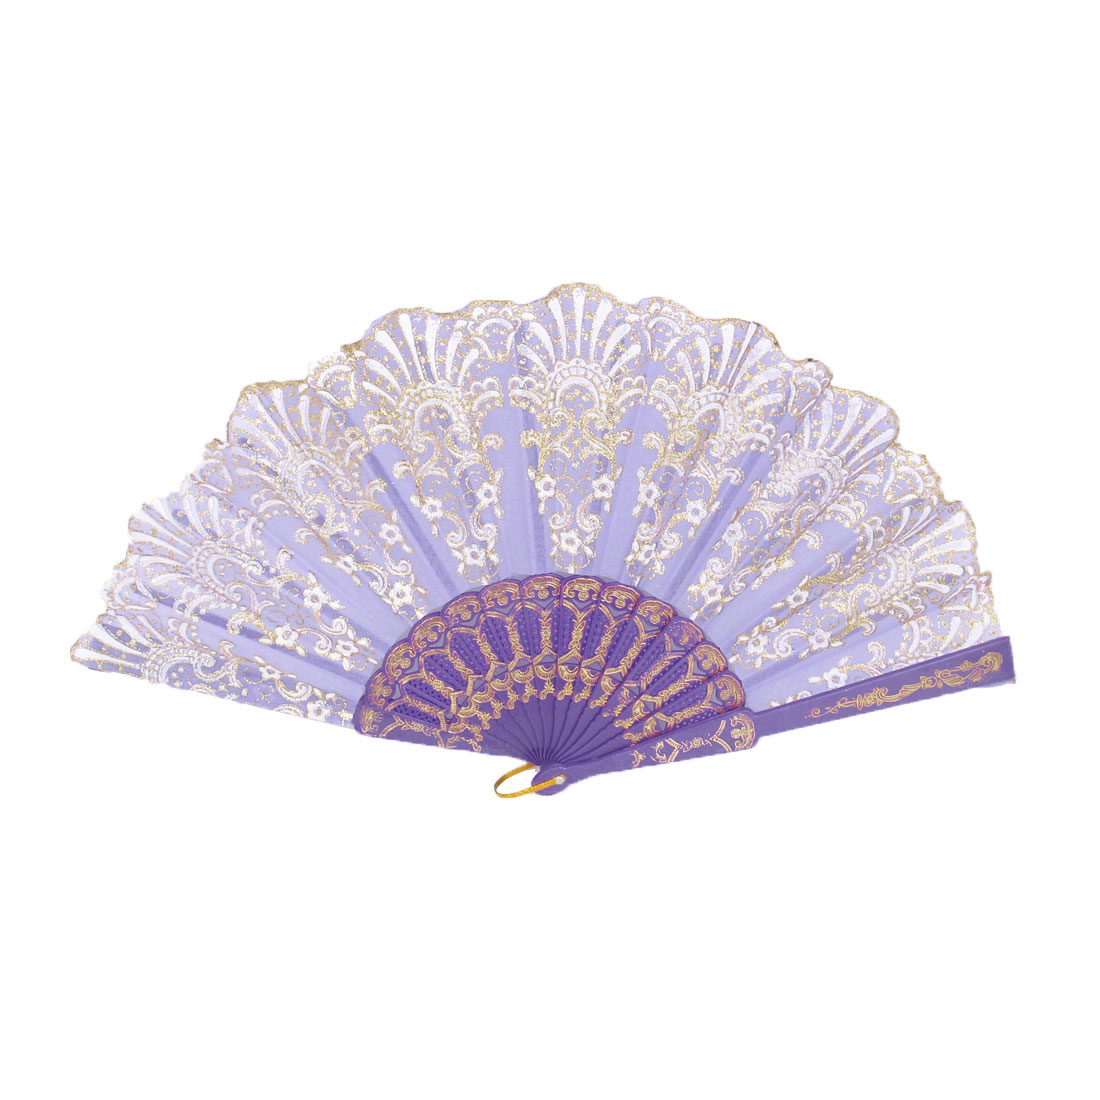 Wedding Party Gift Plastic Rib Floral Print Handheld Dancing Folding Hand Fan Purple